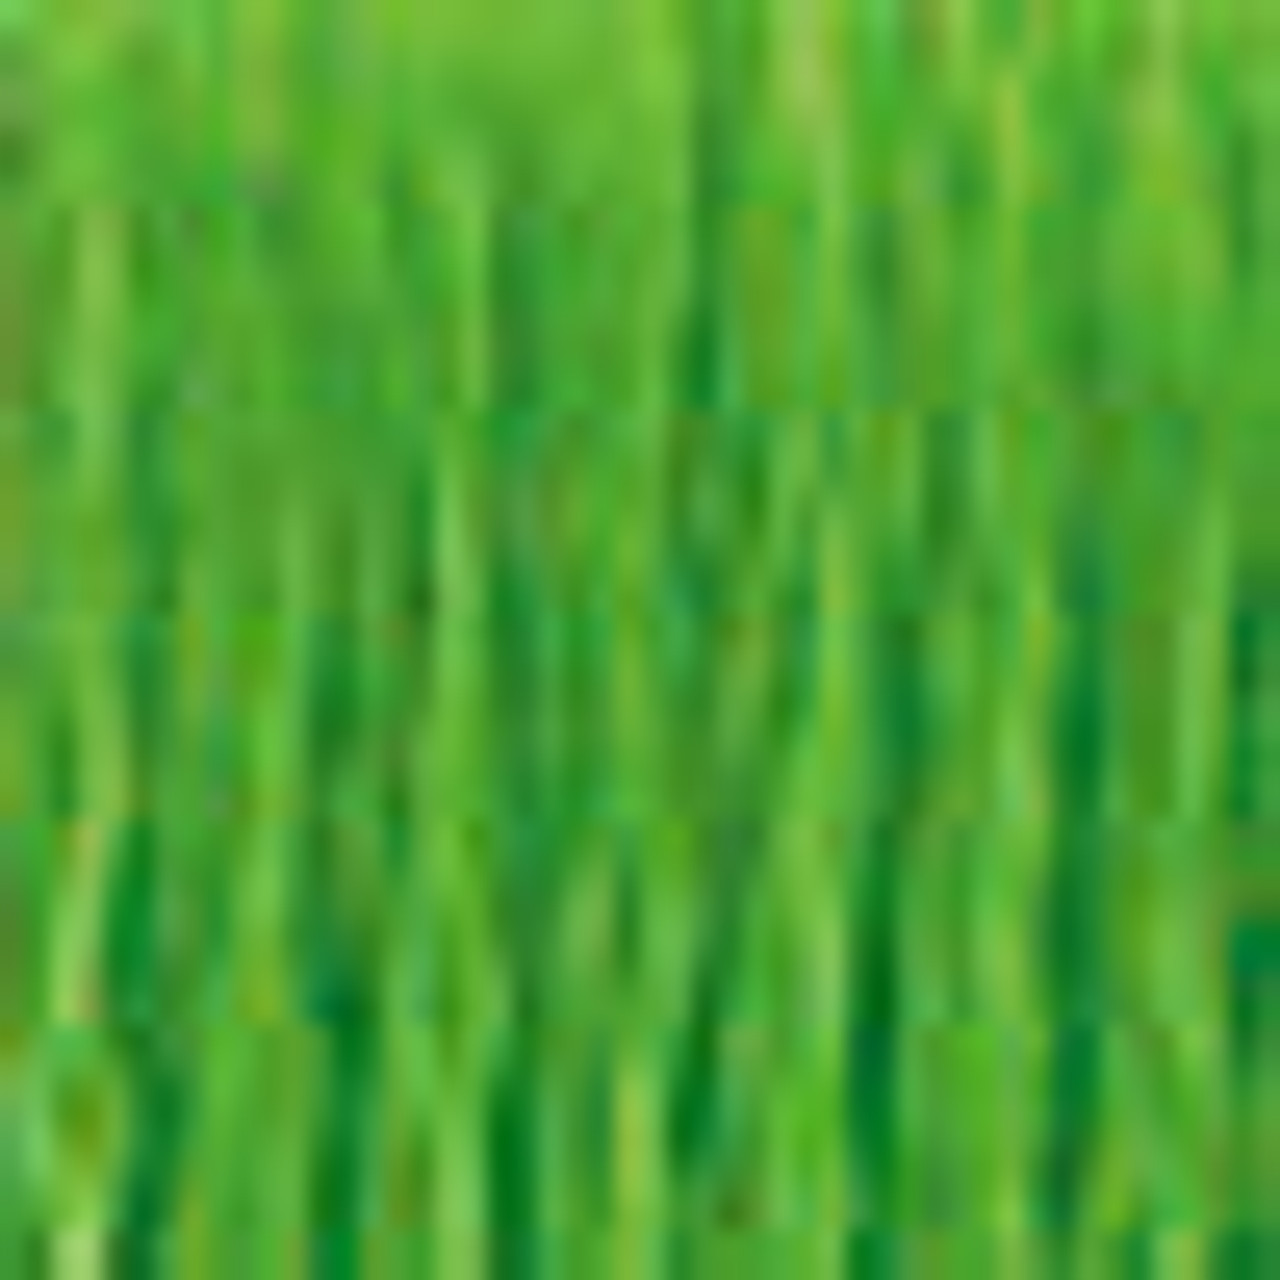 DMC # 906 Medium Parrot Green Floss / Thread